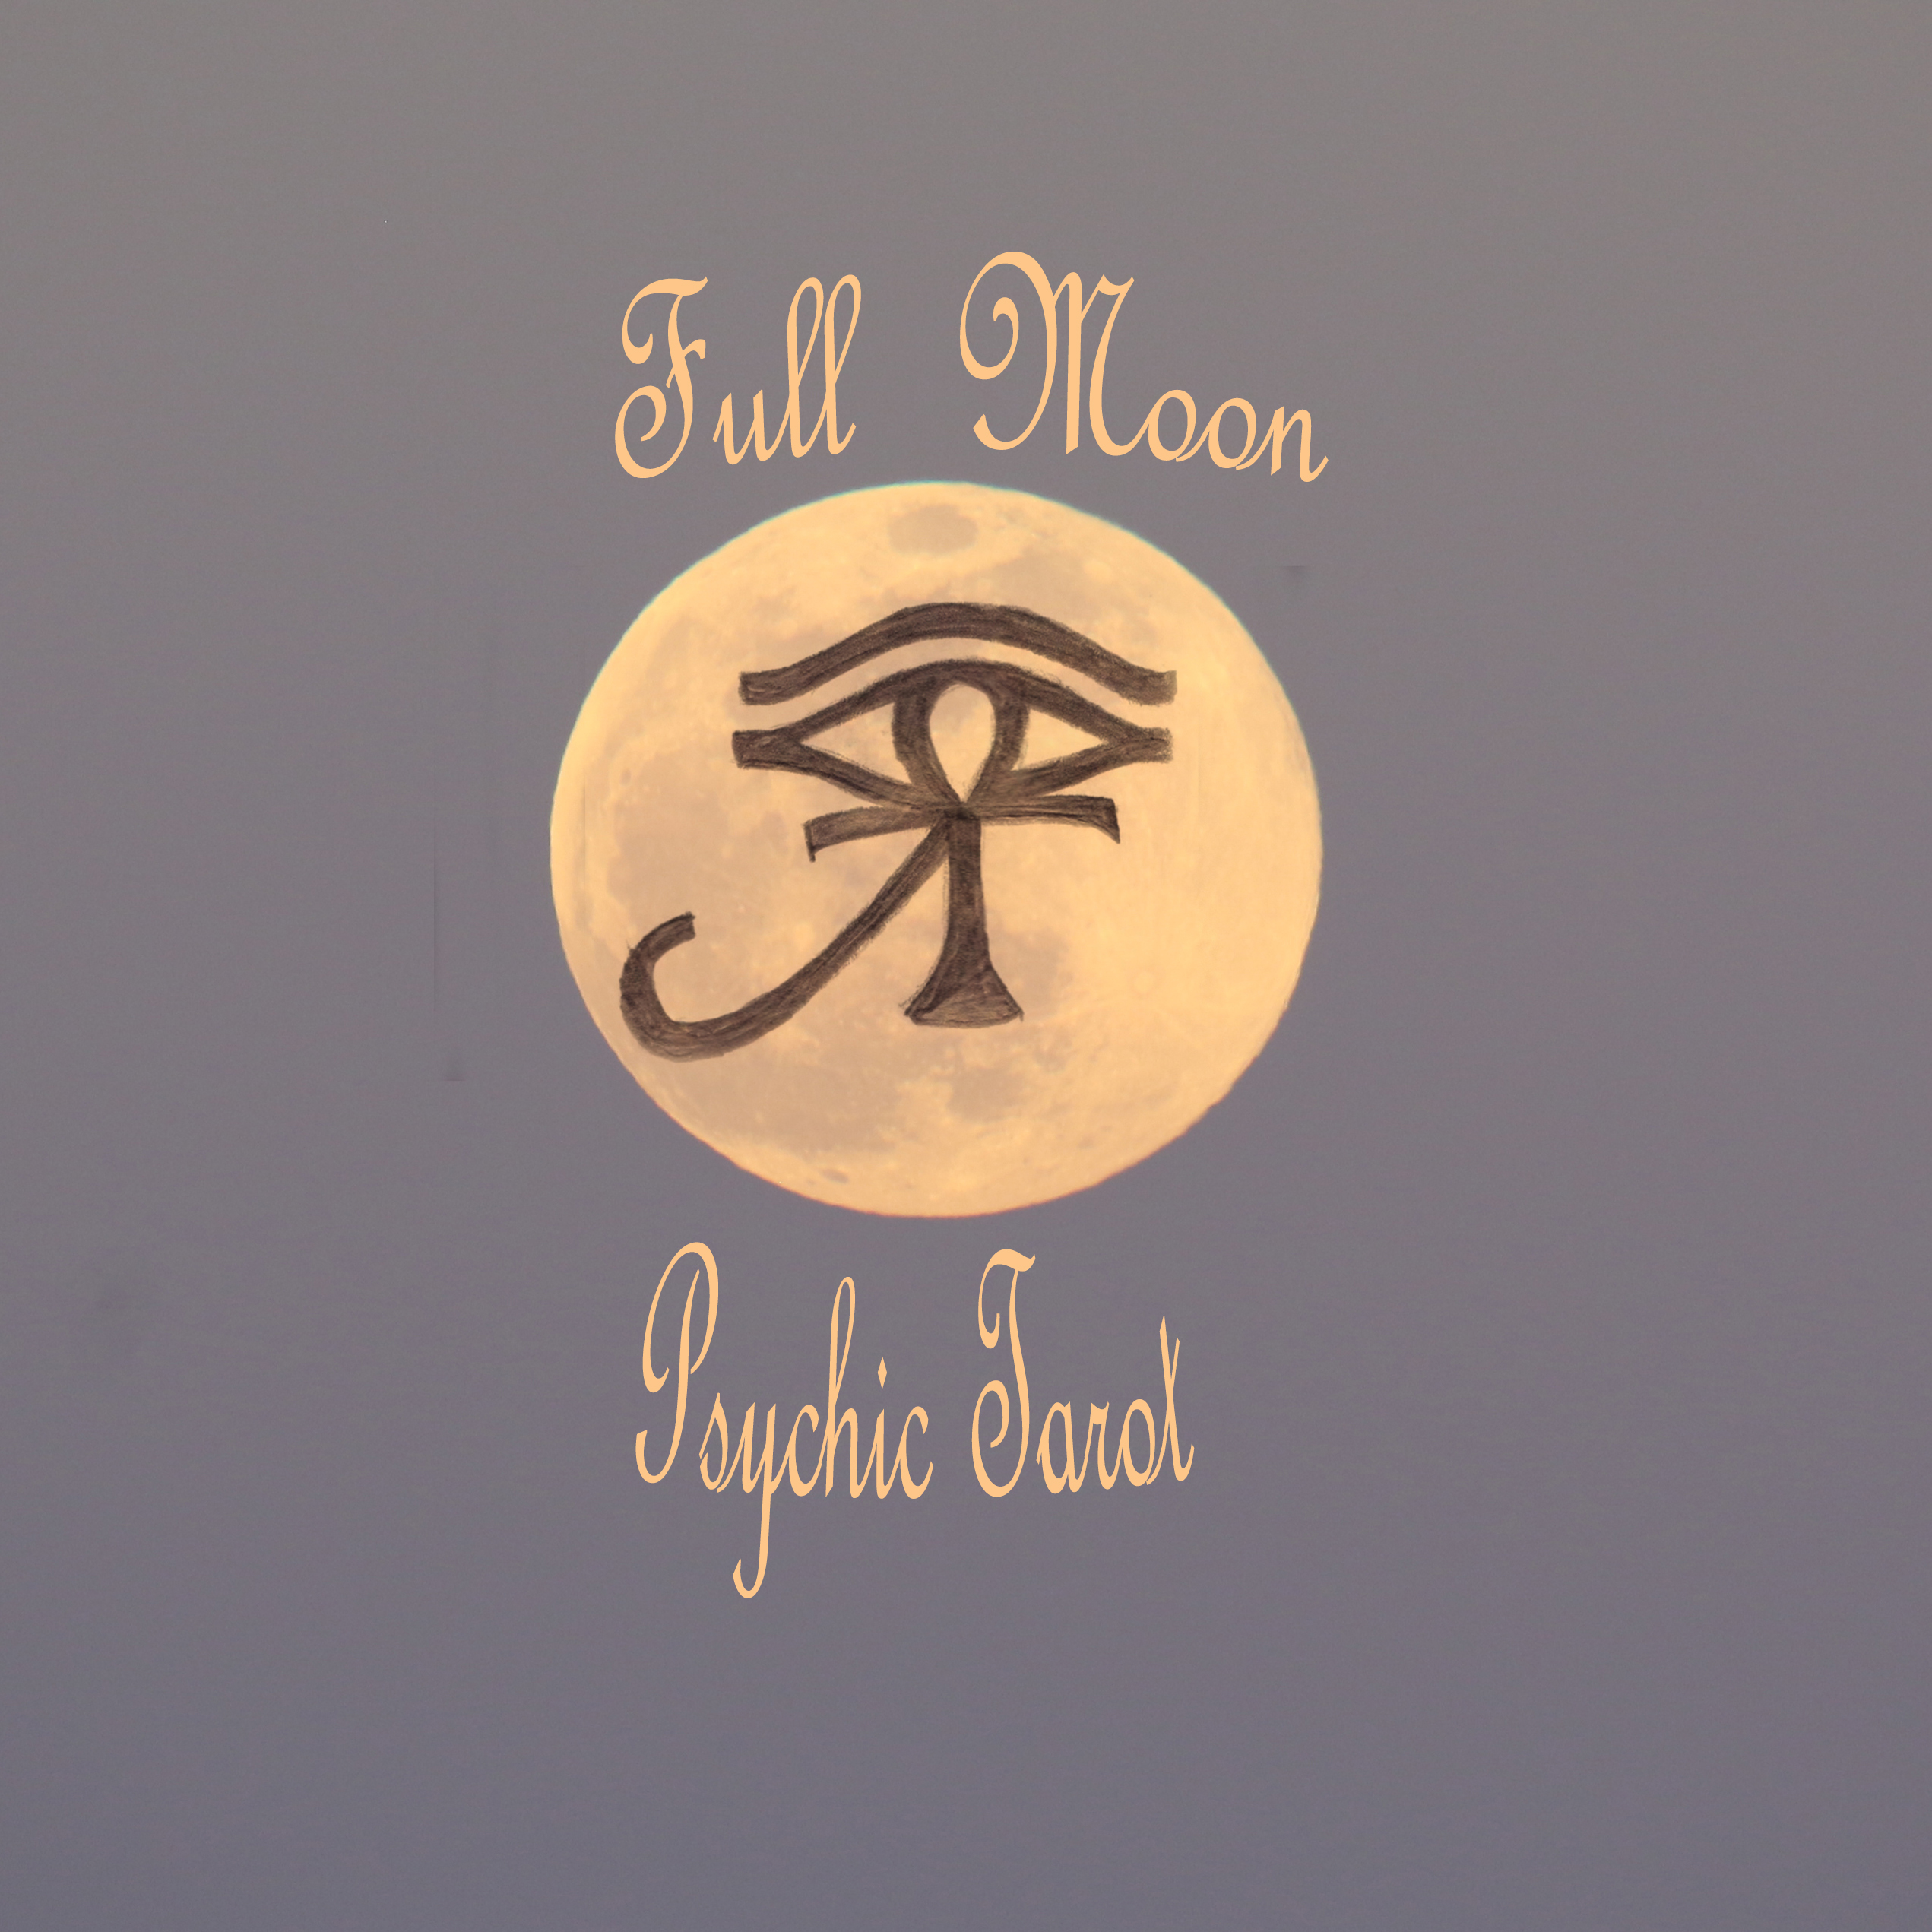 Full Moon                  Psychic Tarot